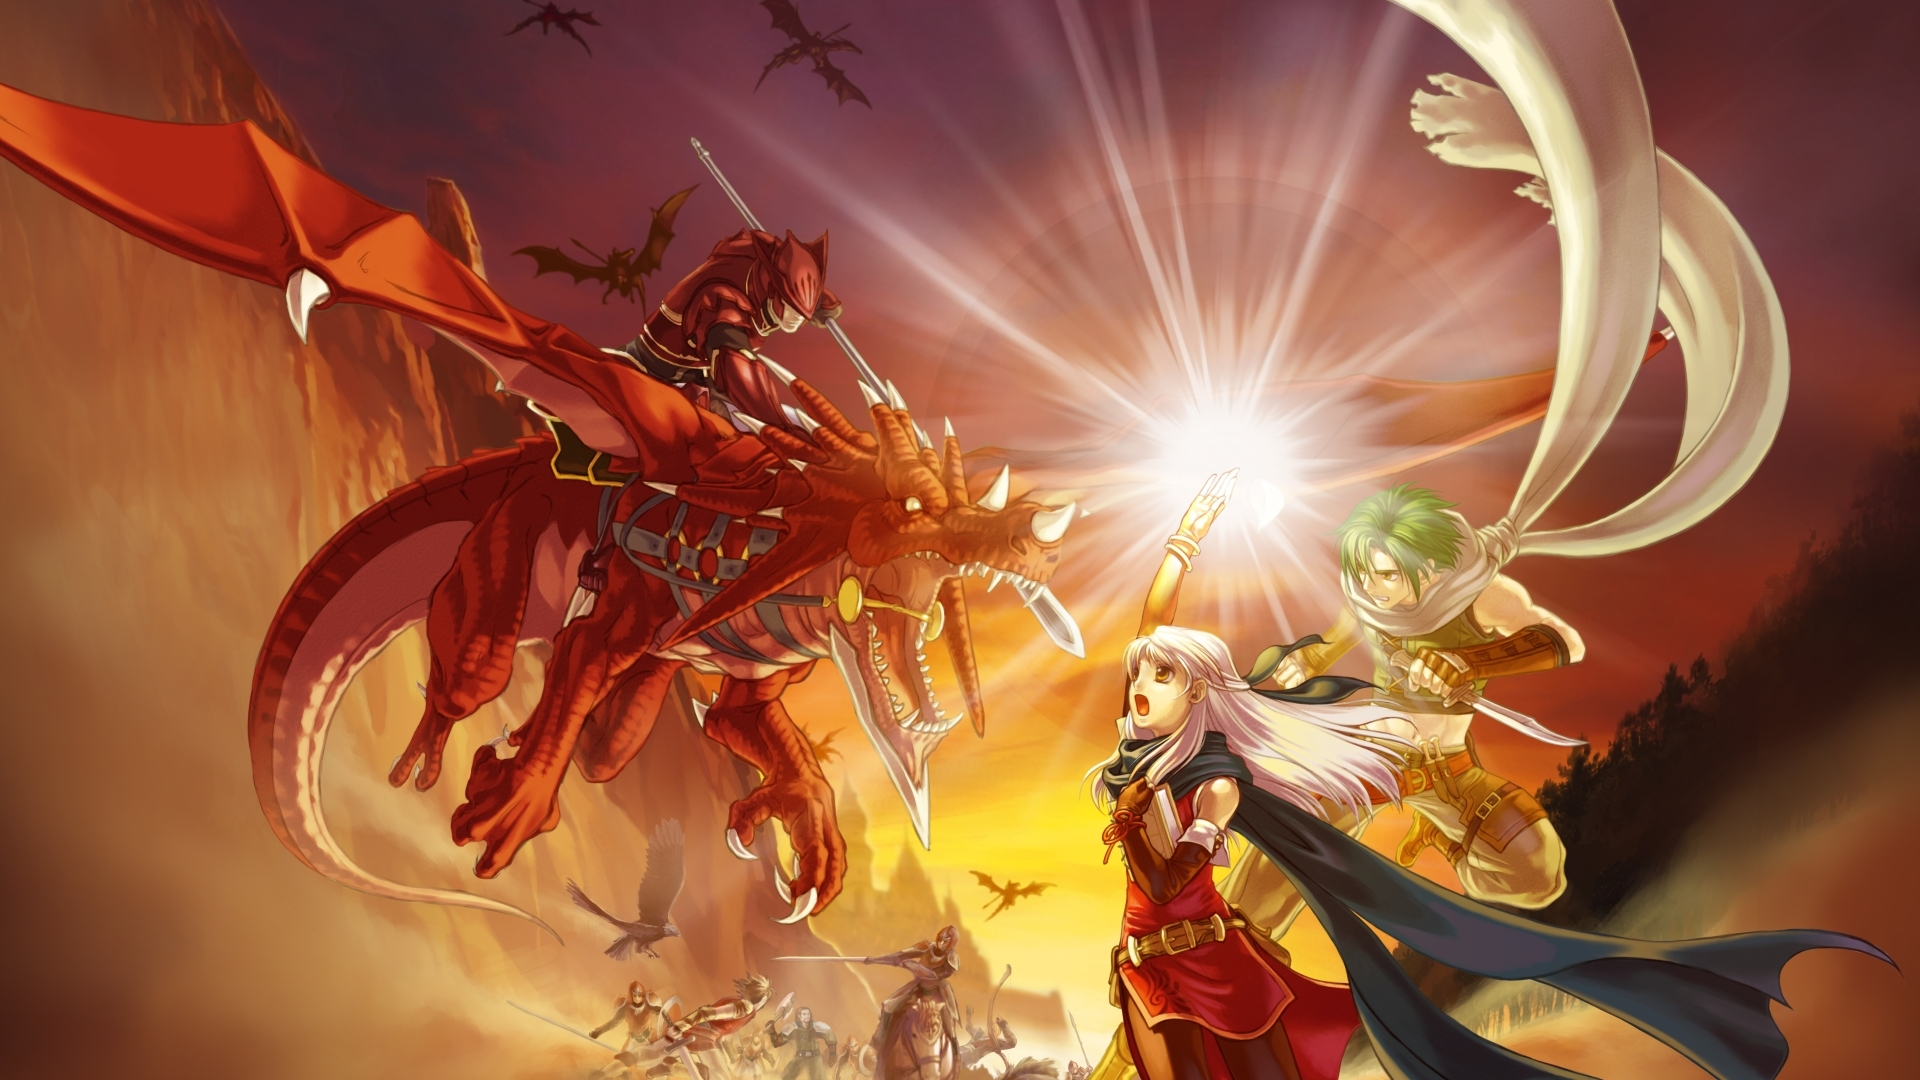 nintendo woman fire emblem HD Wallpaper